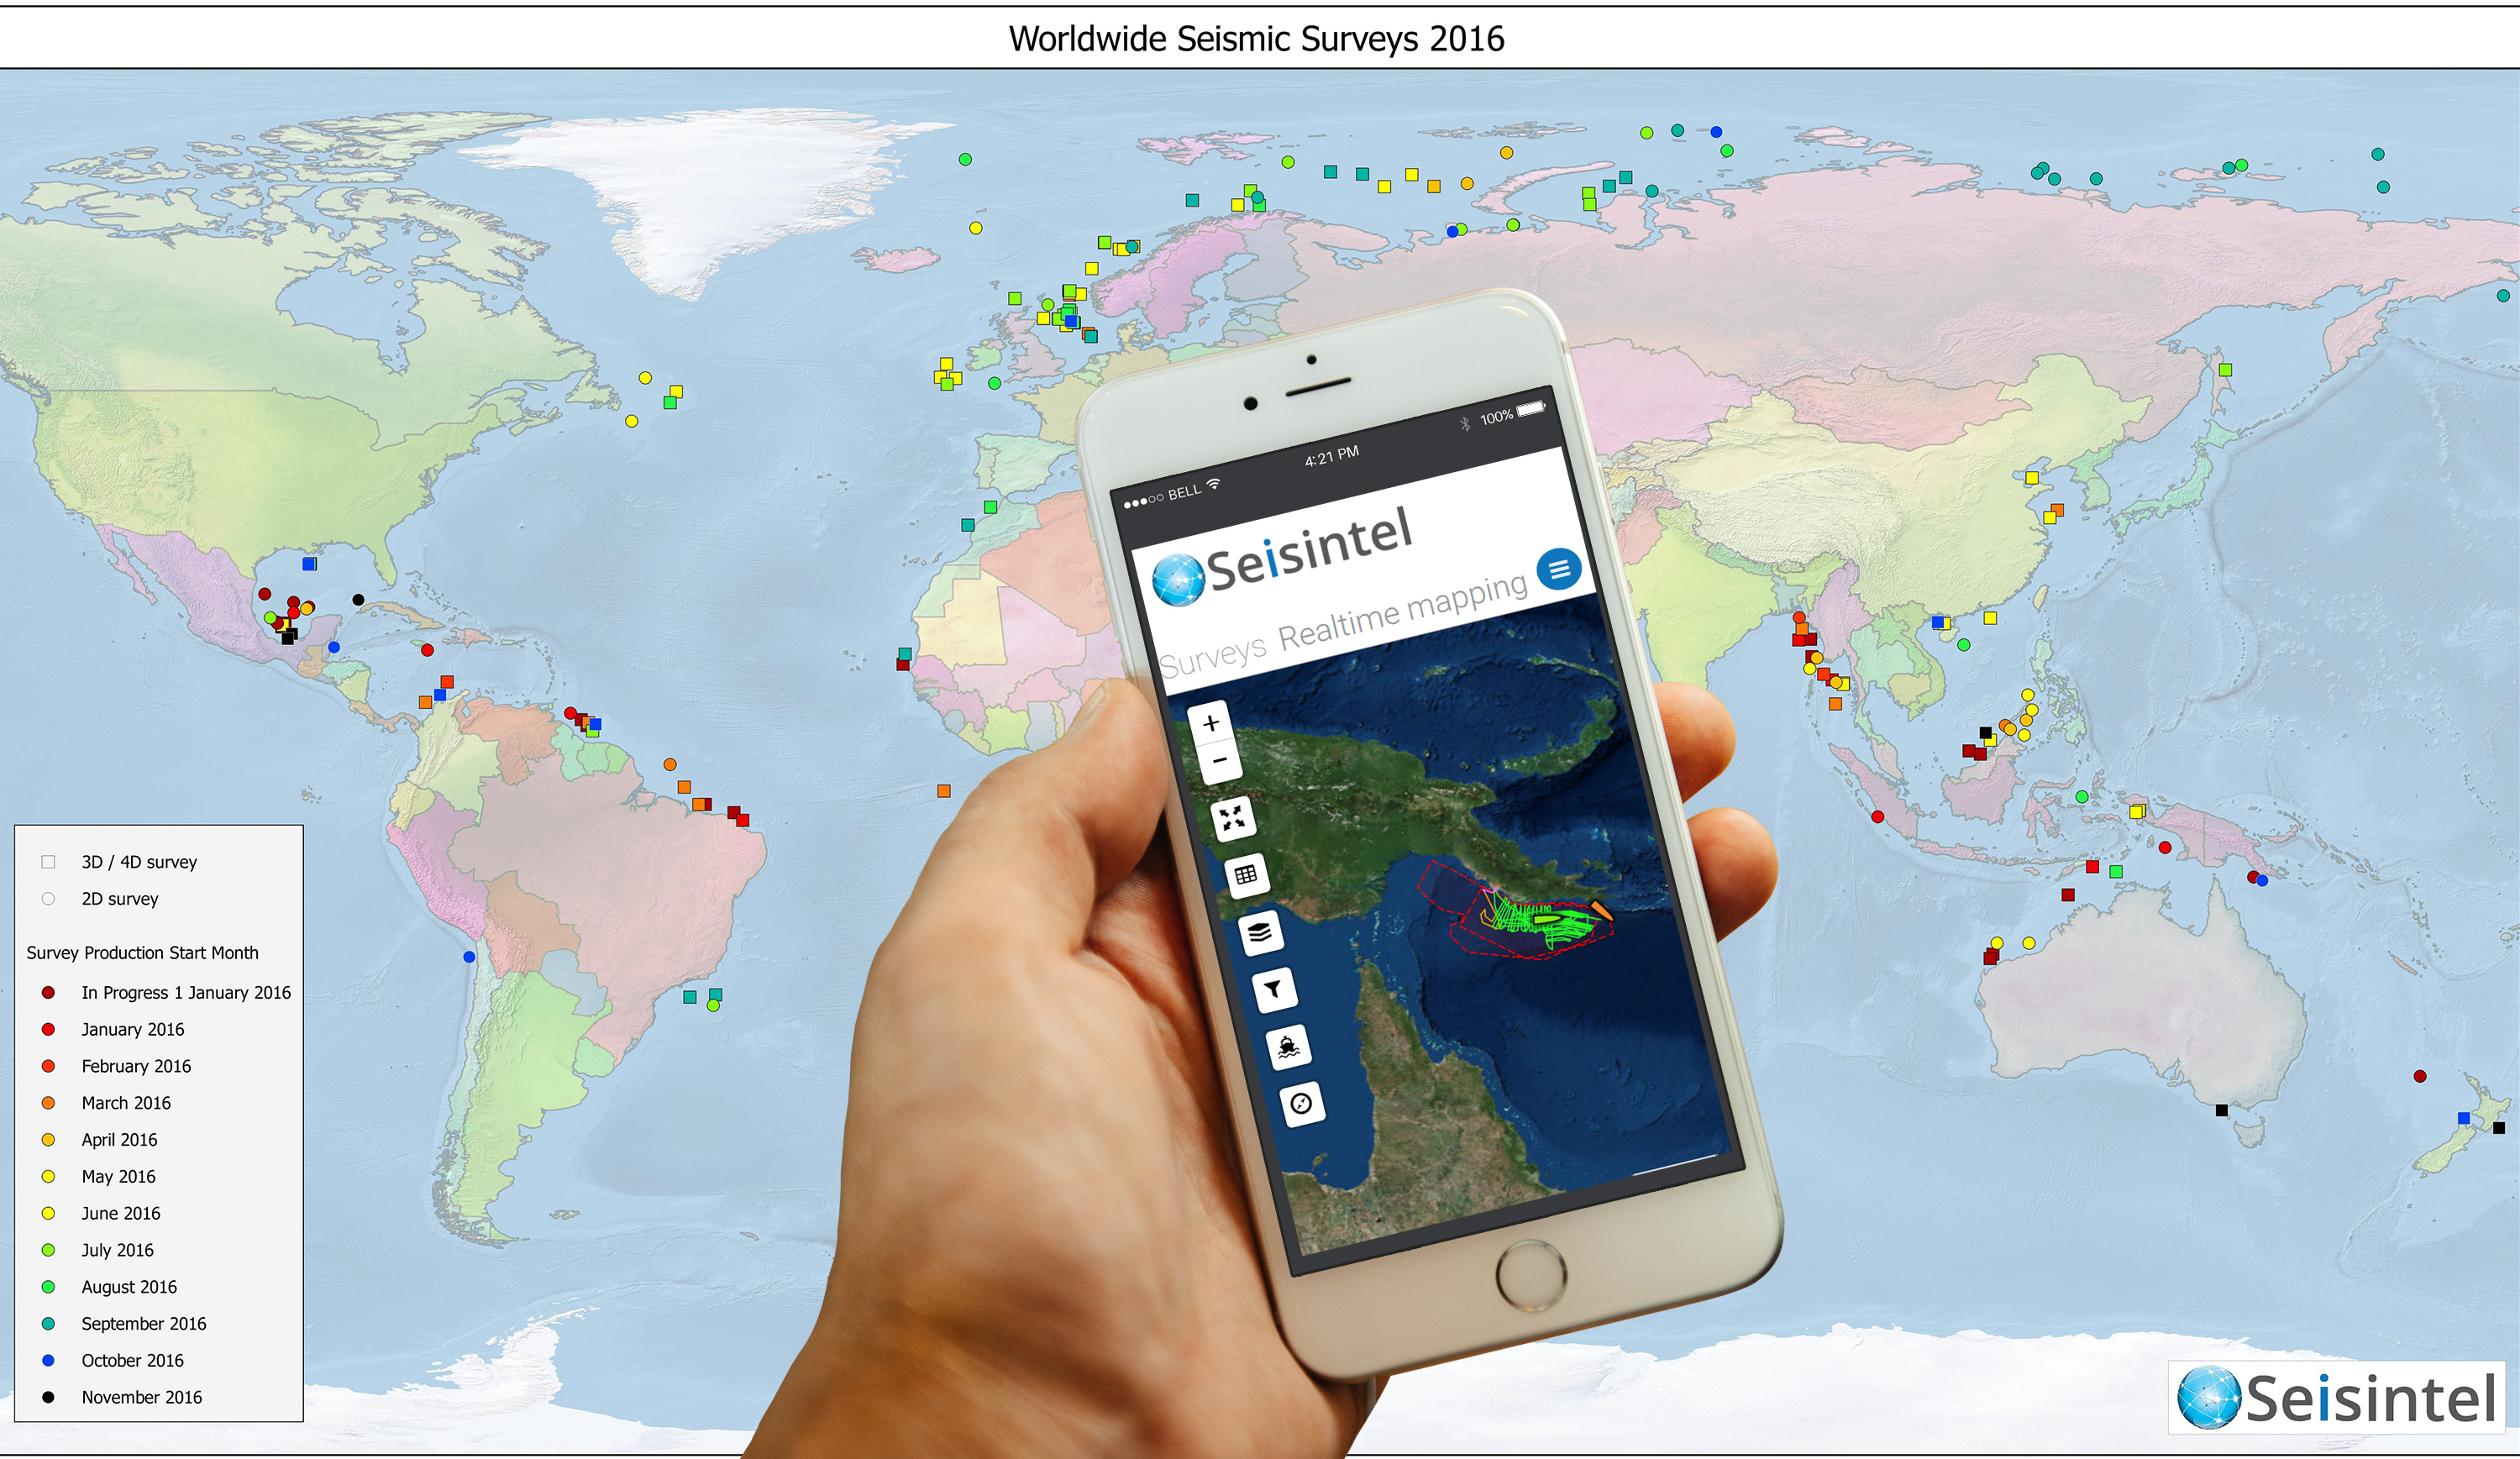 News | Seisintel | providing leading geospatial products Intel World Map on ngs world map, tableau world map, zebra world map, nokia networks world map, att world map, hp world map, kaspersky world map, bank of america world map, xiaomi world map, nsa world map, aig world map, tcs world map, yazaki world map, ford world map, palm world map, airbnb world map, tomtom world map, philips world map, carrefour world map, barnes & noble world map,